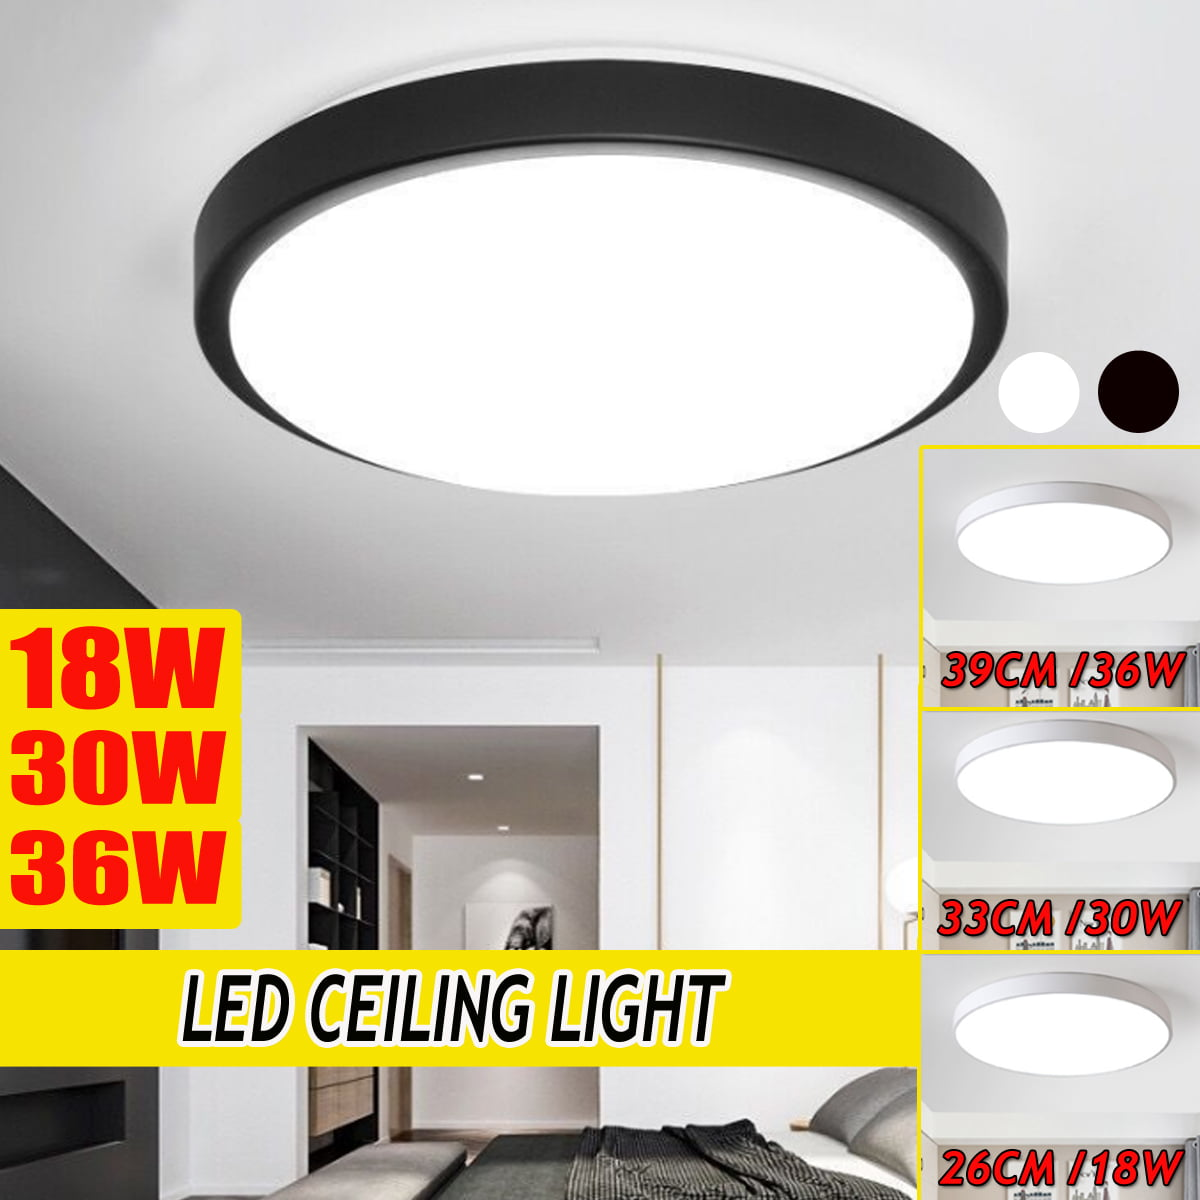 Ceiling Lights Led Flush Mount 6000k 6500k 18w 30w 36w Ceiling Lighting Fixtures Daylight White For Living Room Bedroom Kitchen Hallway Office Walmart Canada